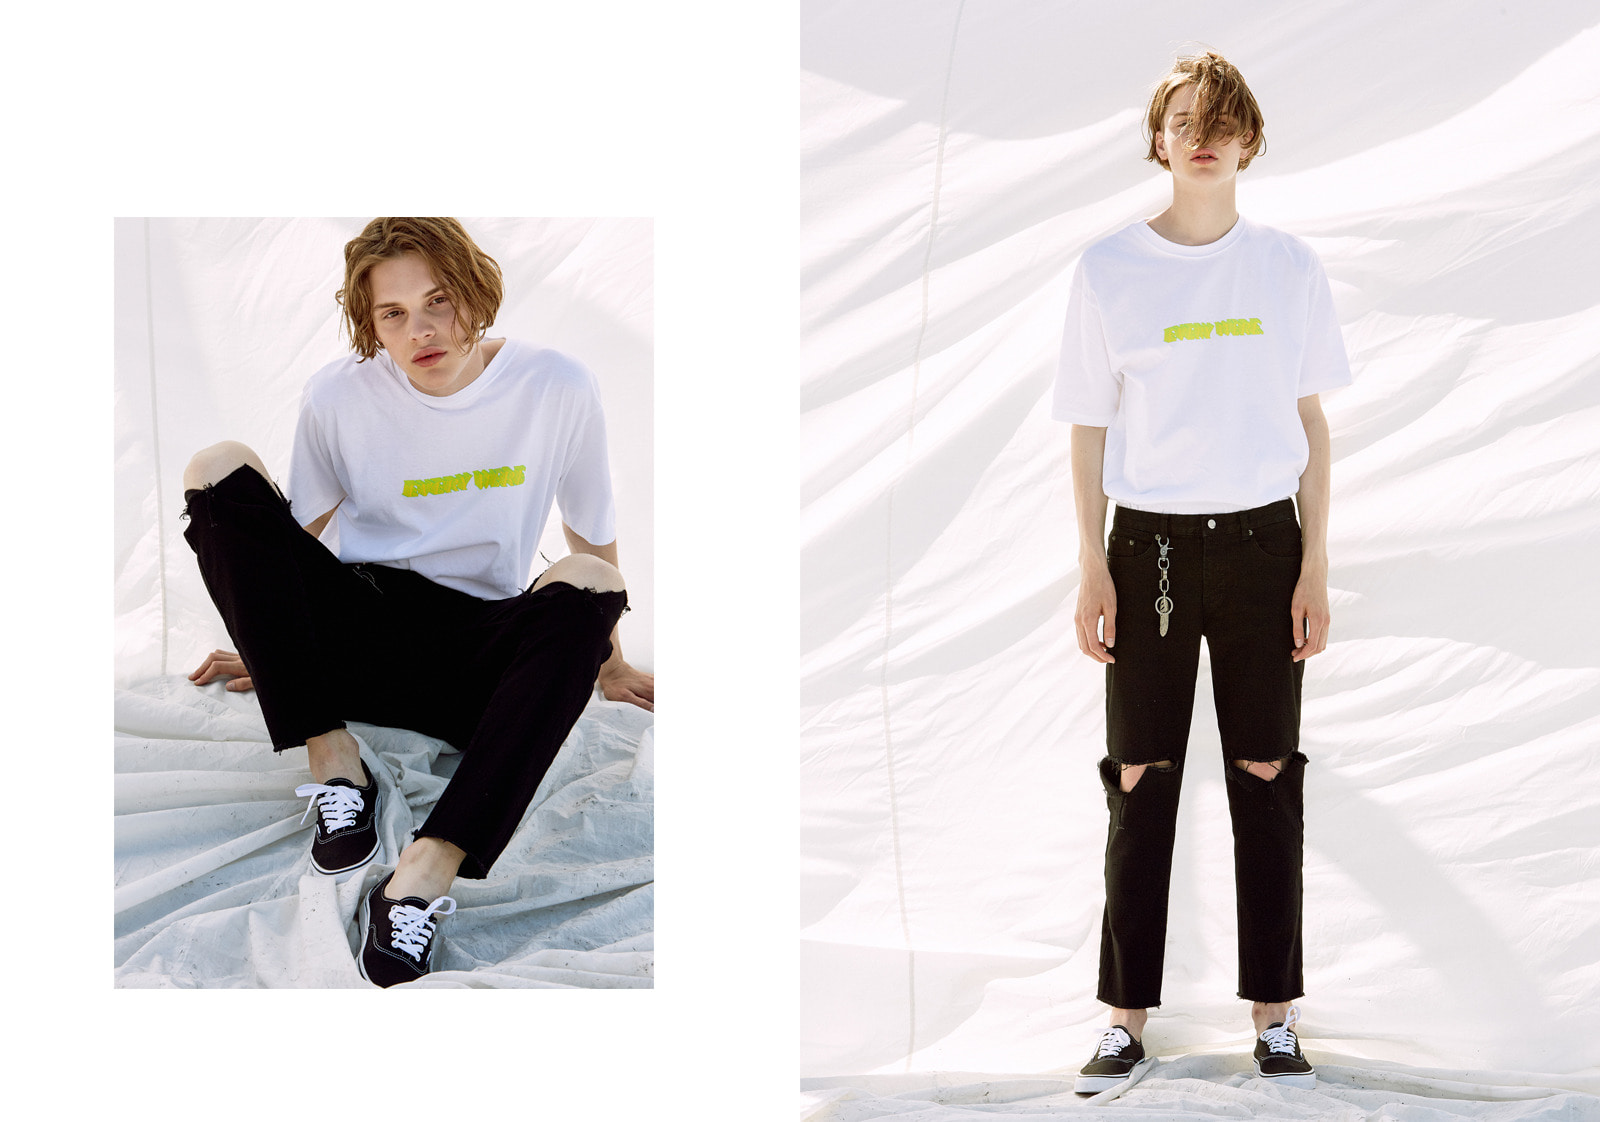 2018 S/W COLLECTION #2 LOOKBOOK